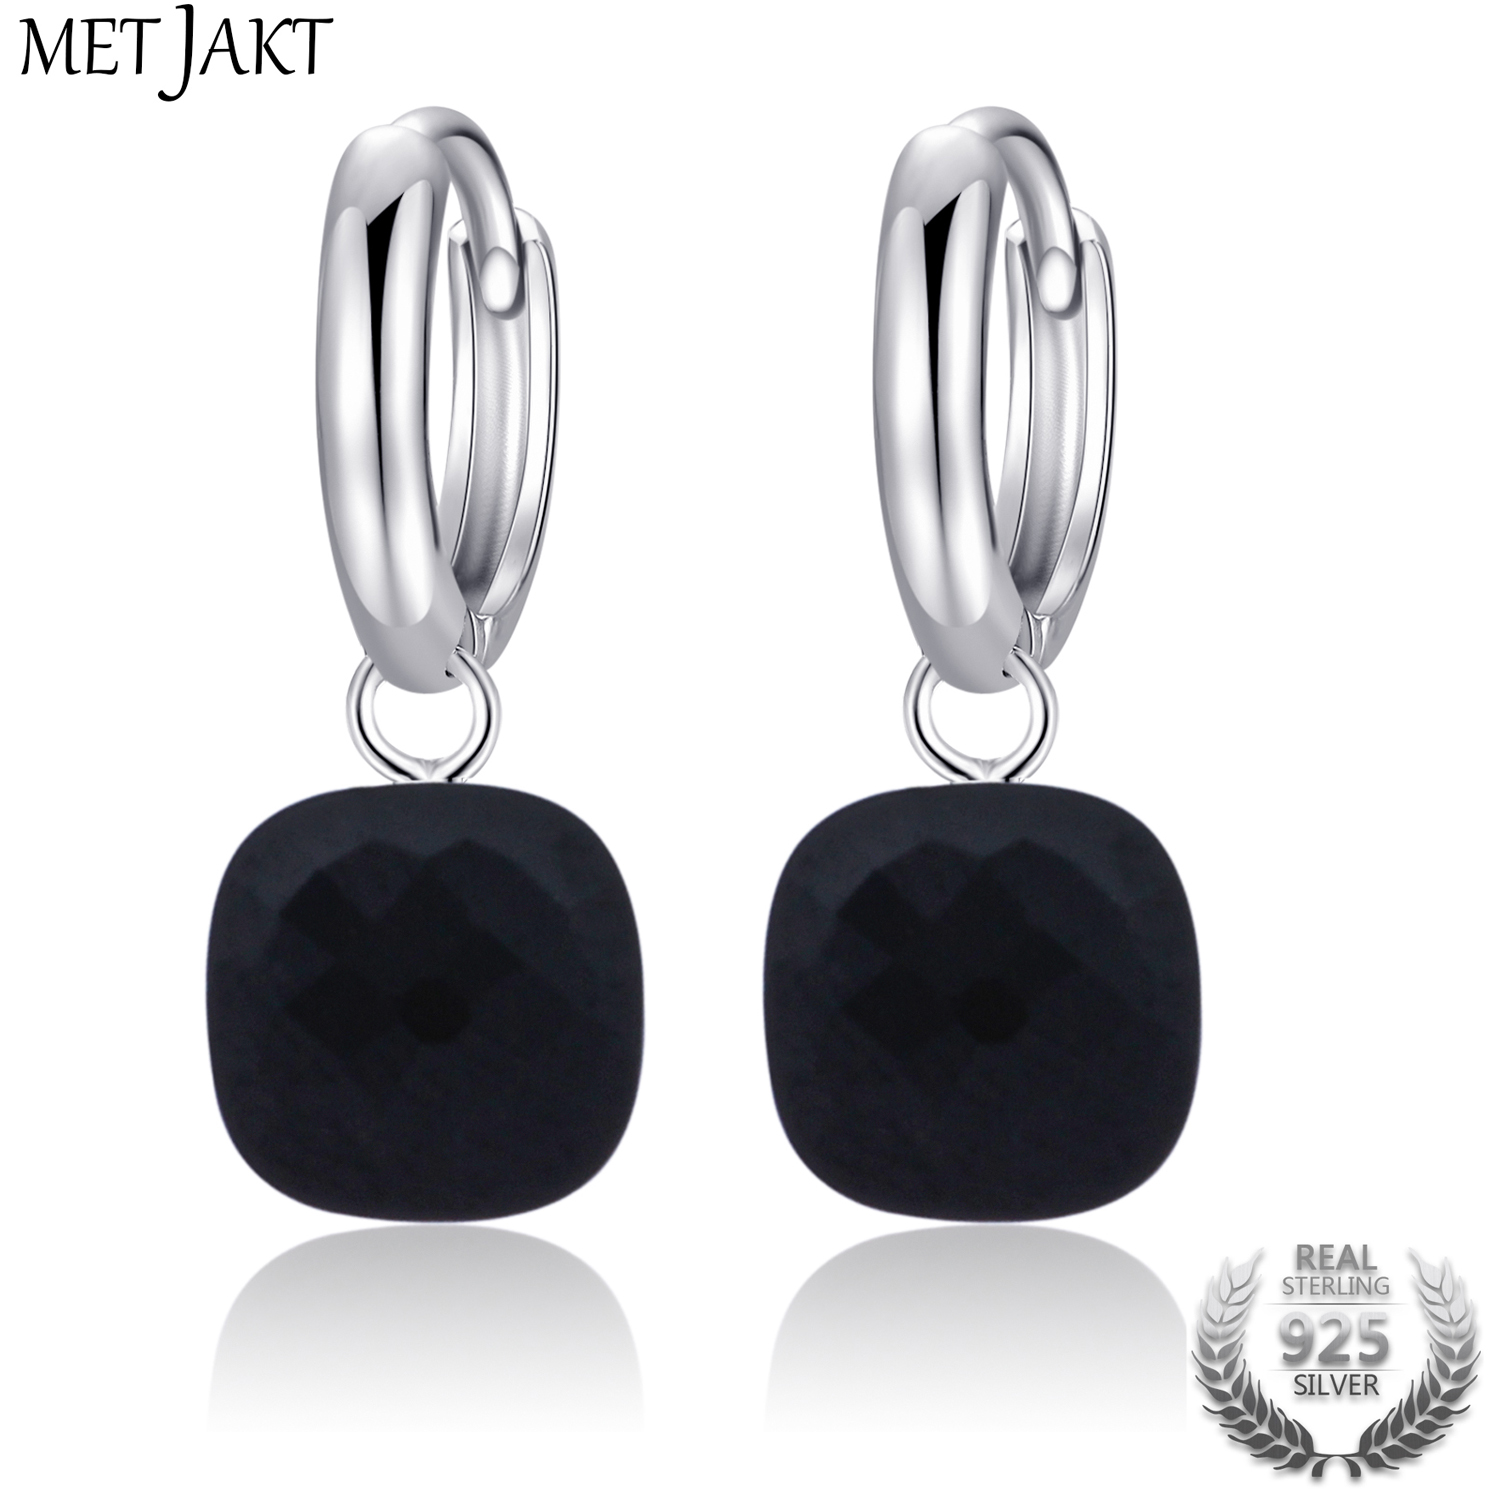 MetJakt Classic Natural Black Agate Earrings Solid 925 Sterling Silver Pendant Earring For Women's Occasions Fine Jewelry